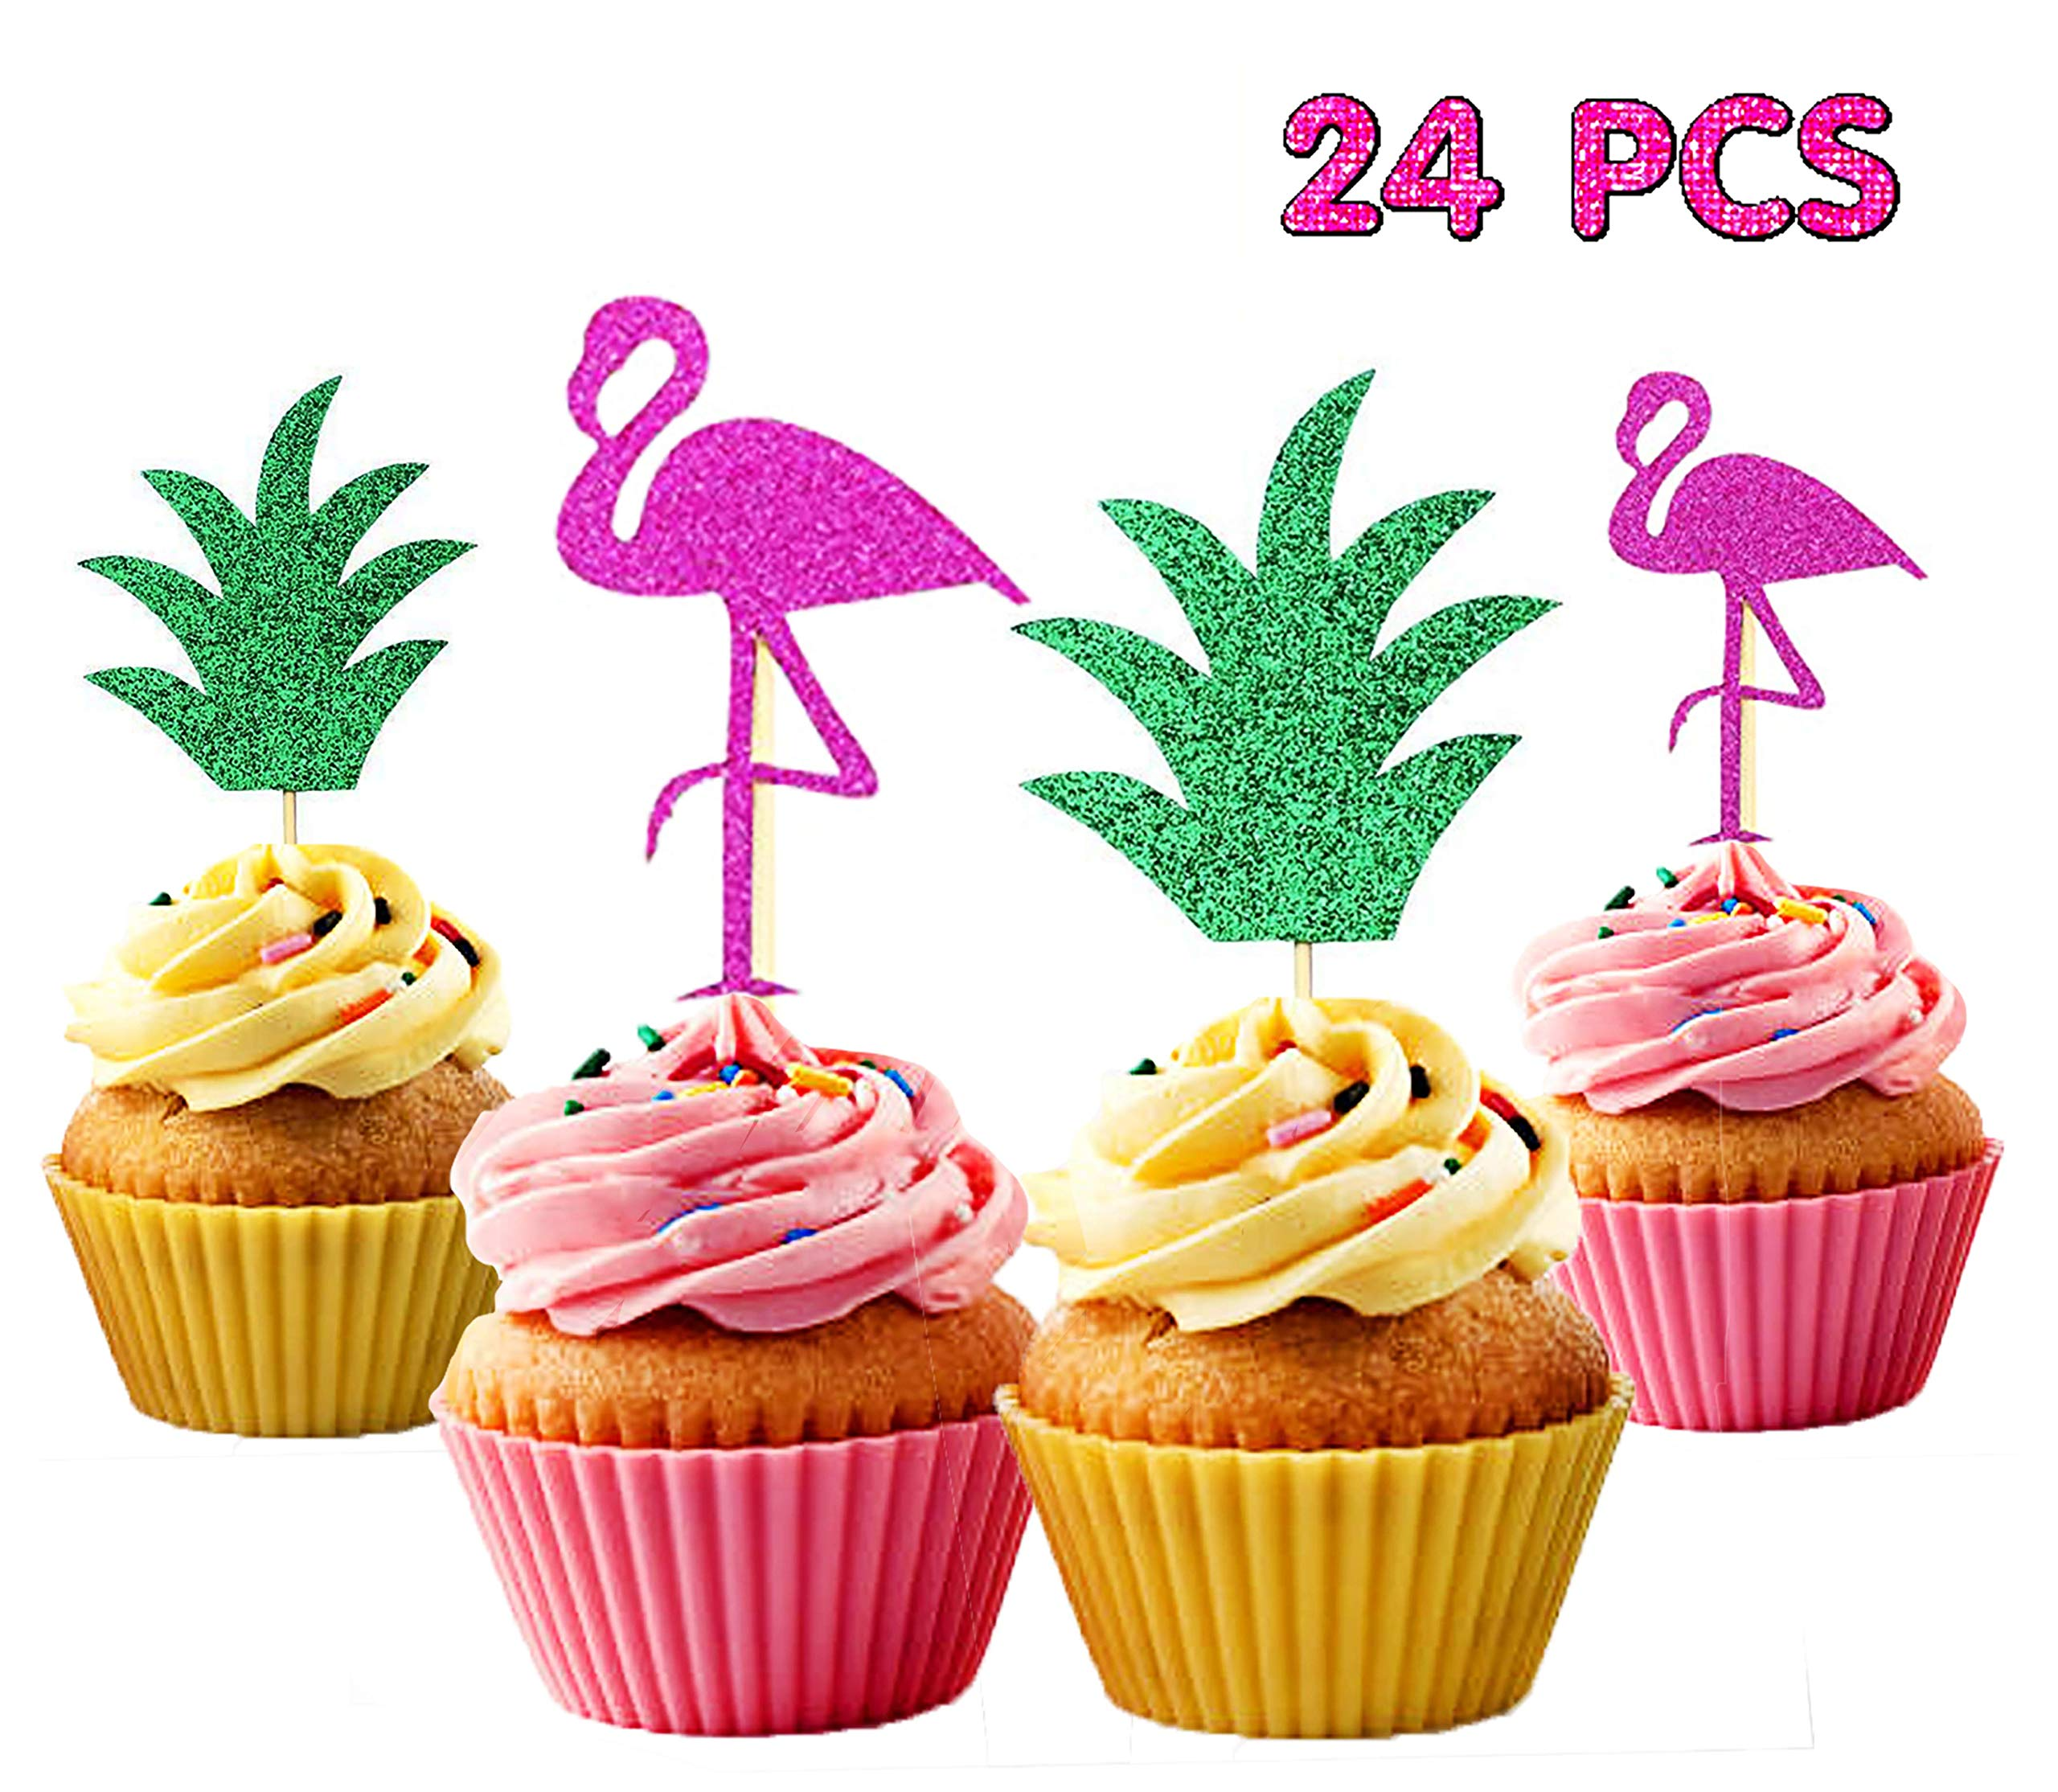 24 Pcs Flamingo Pineapple Cupcake Toppers Luau Tropical Hawaiian Pool Party Supplies Summer Birthday Cake Decorations Buy Online In Botswana At Botswana Desertcart Com Productid 149641899